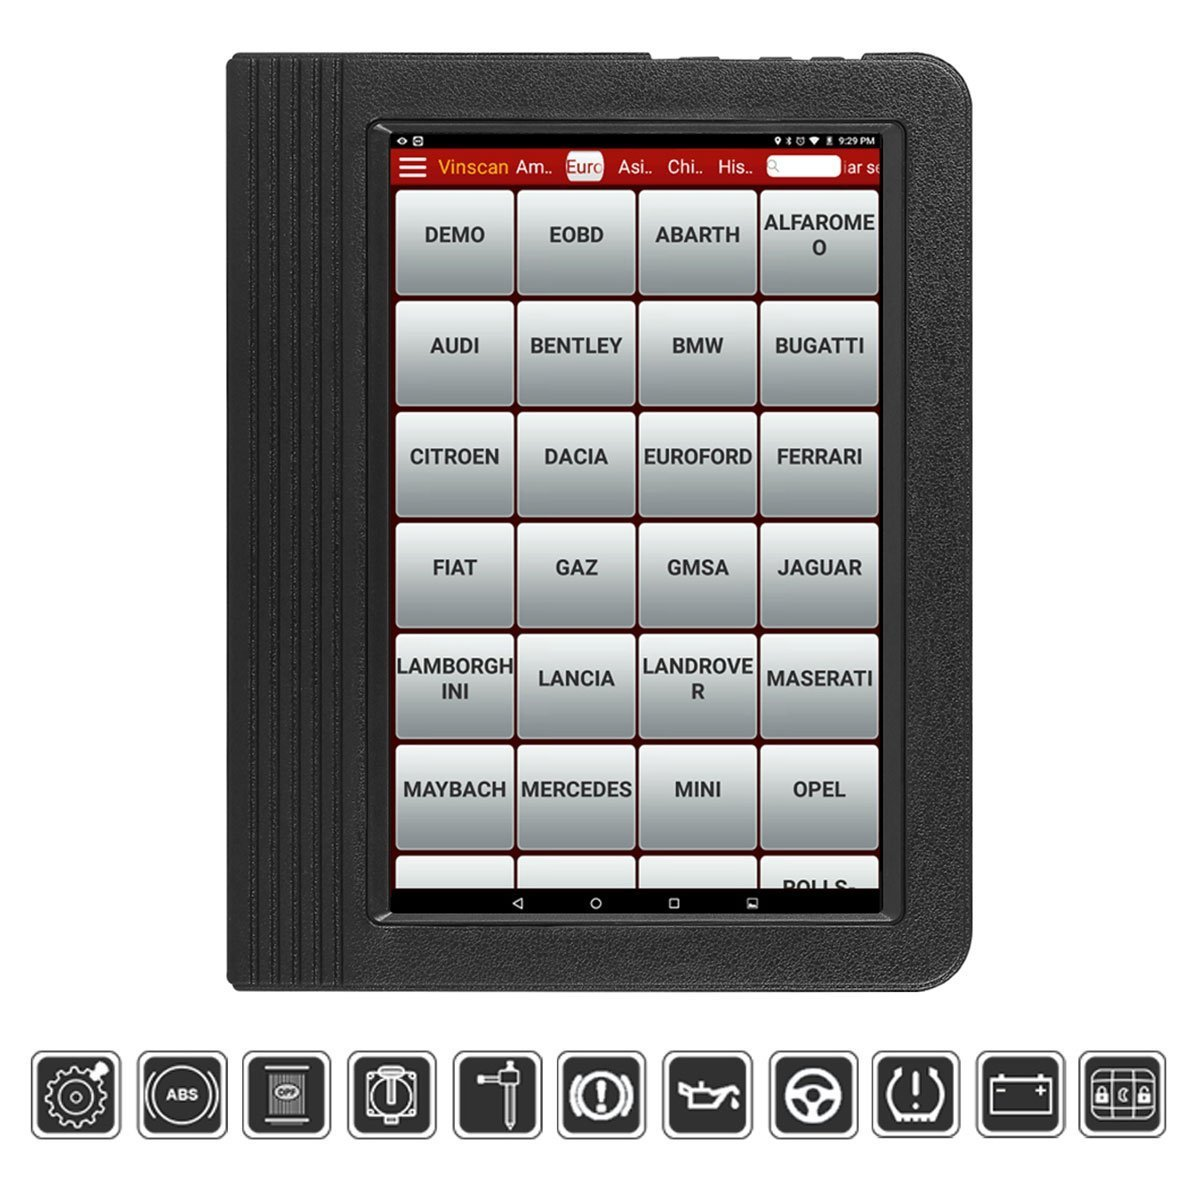 Launch X431 V+ is a Professional Car Diagnostic Tool made by Launch.